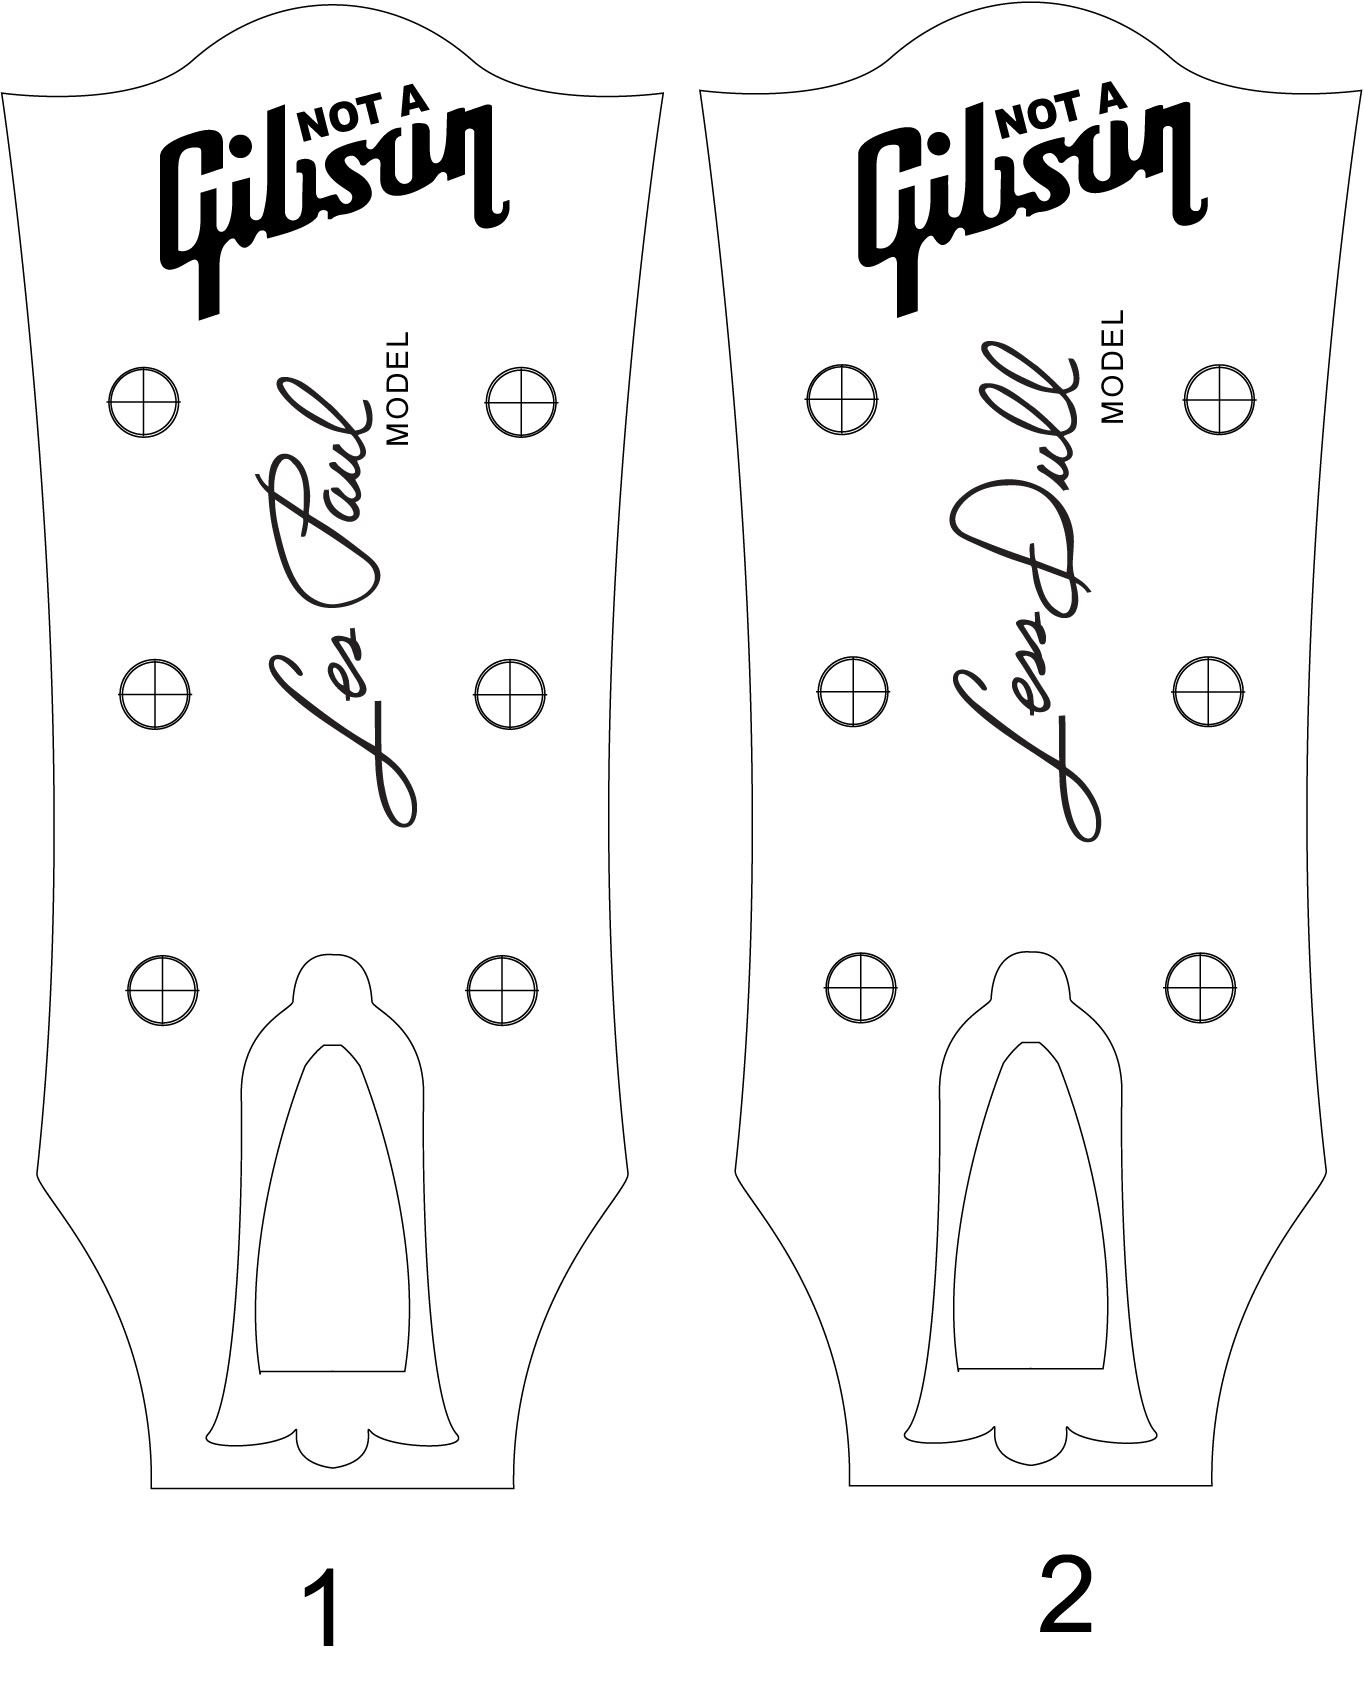 fender bass headstock template - les paul headstock template pdf cerca con google